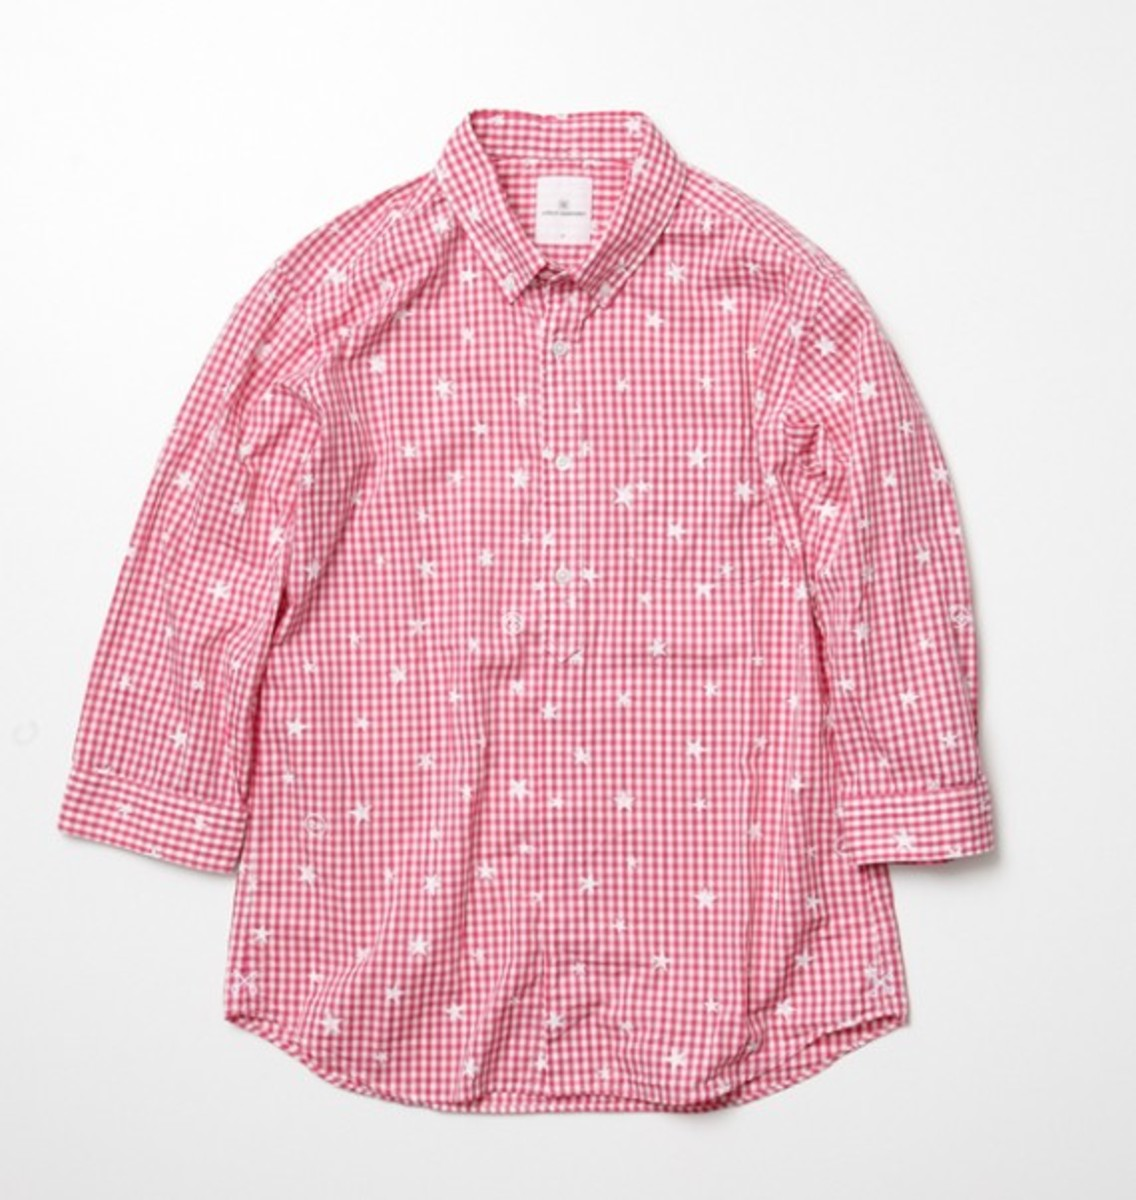 star-print-gingham-check-shirt-04